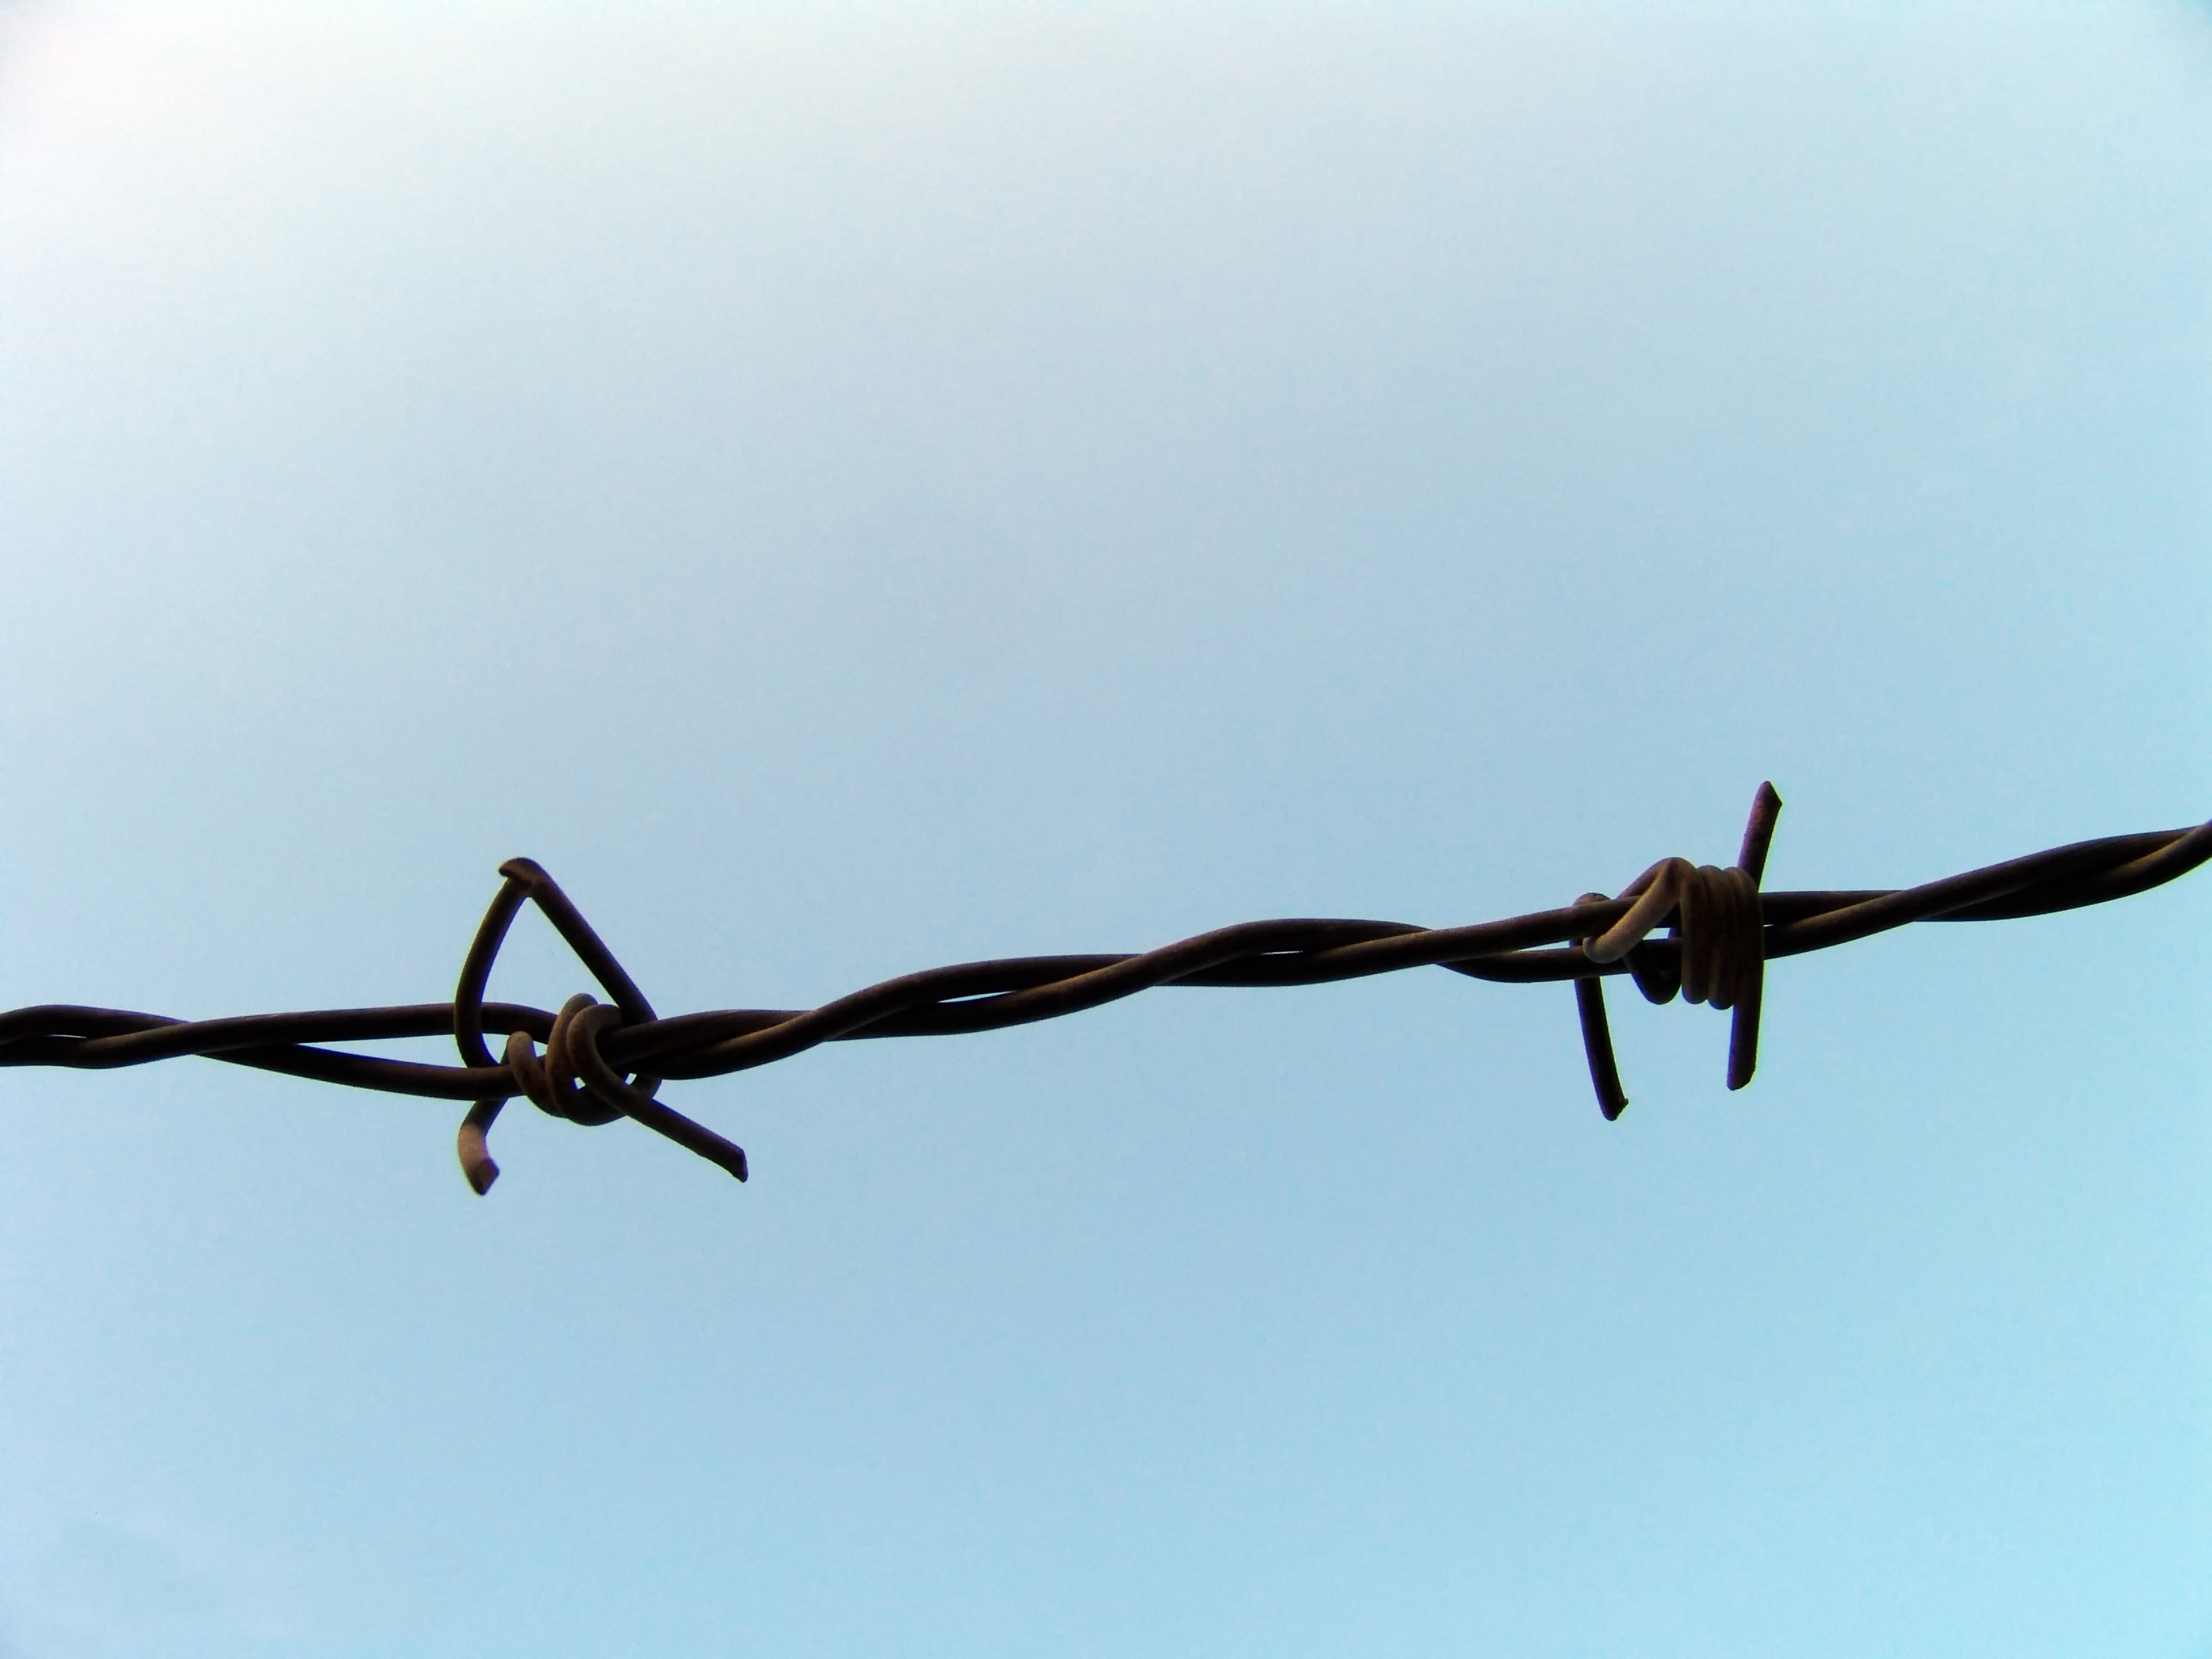 File:Barbed Wire 2.JPG - Wikimedia Commons